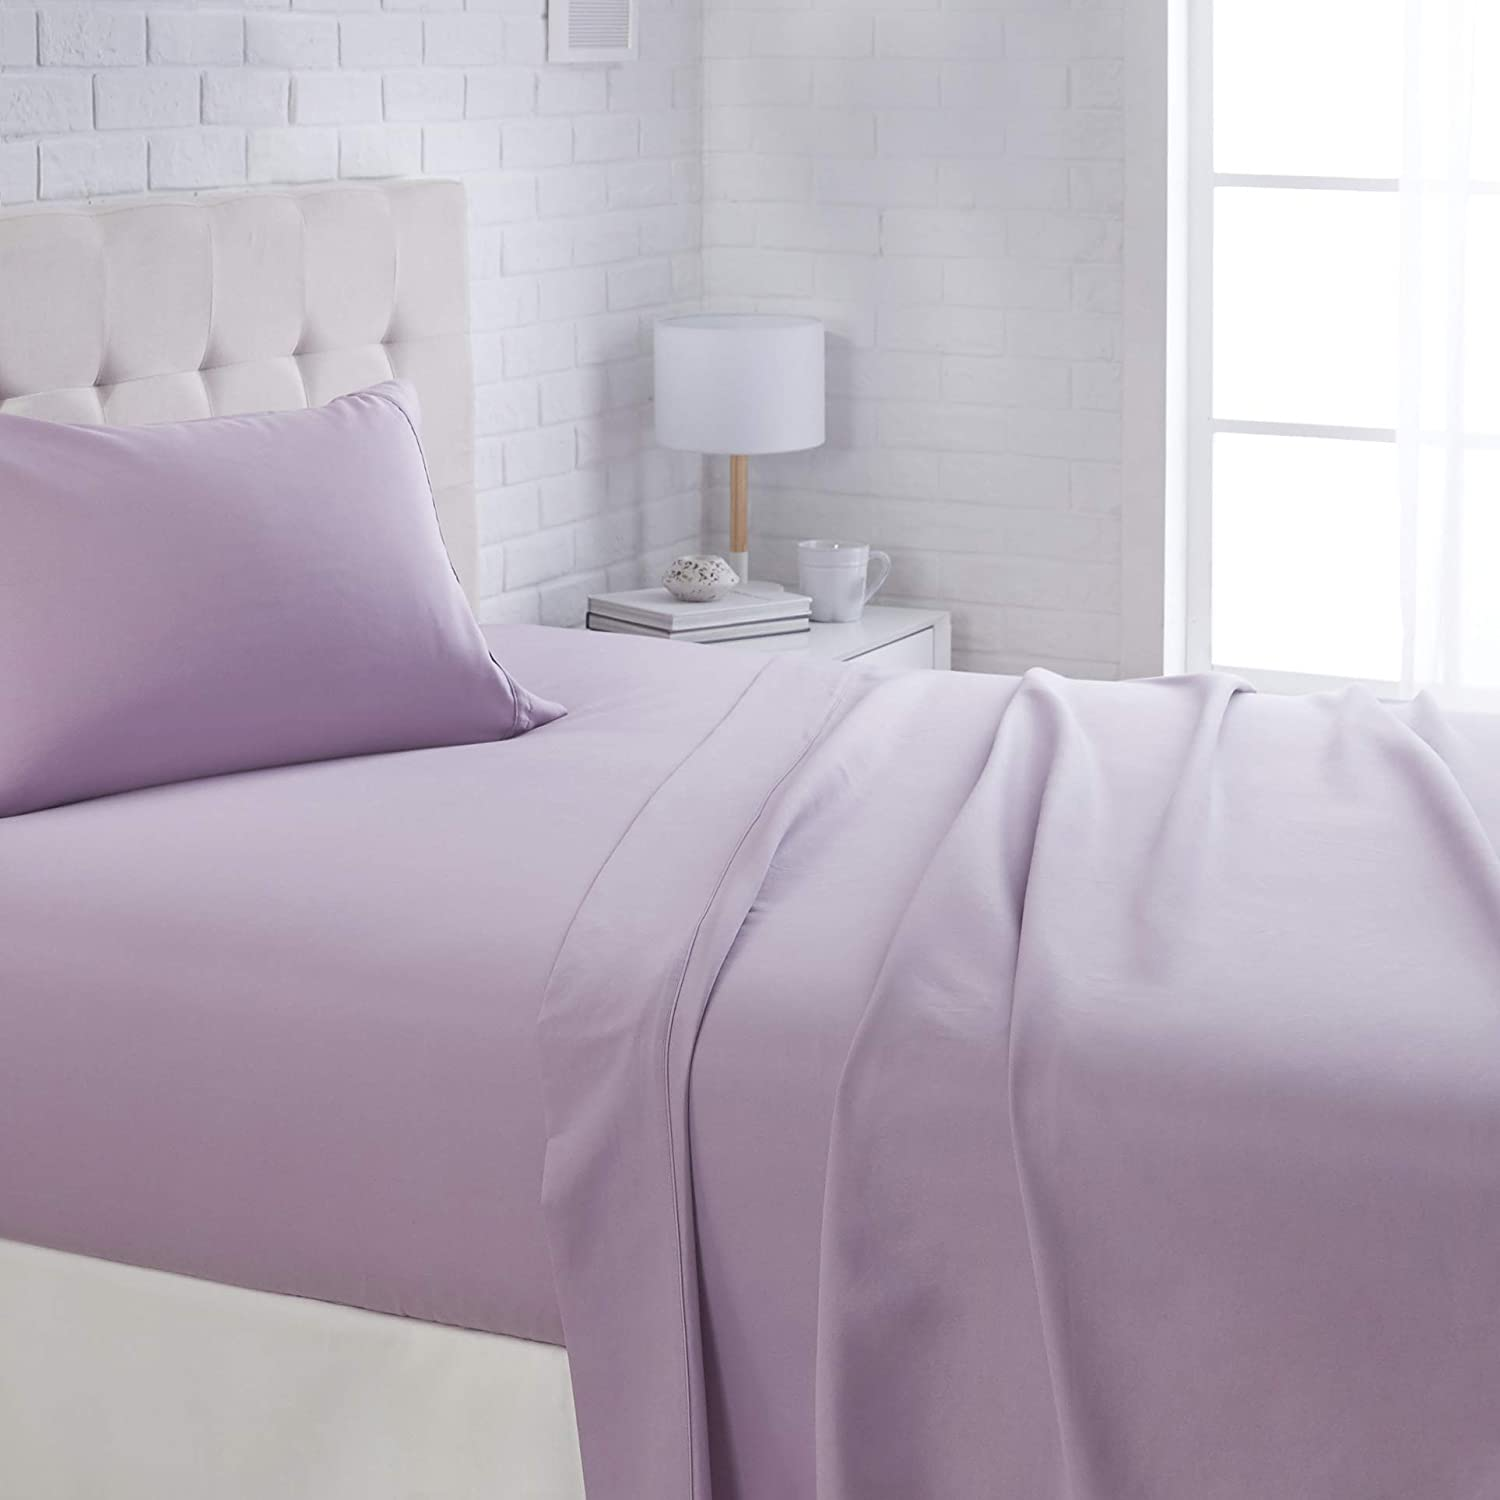 "AmazonBasics Lightweight Super Soft Easy Care Microfiber Sheet Set with 16"" Deep Pockets - Twin XL, Frosted Lavender"